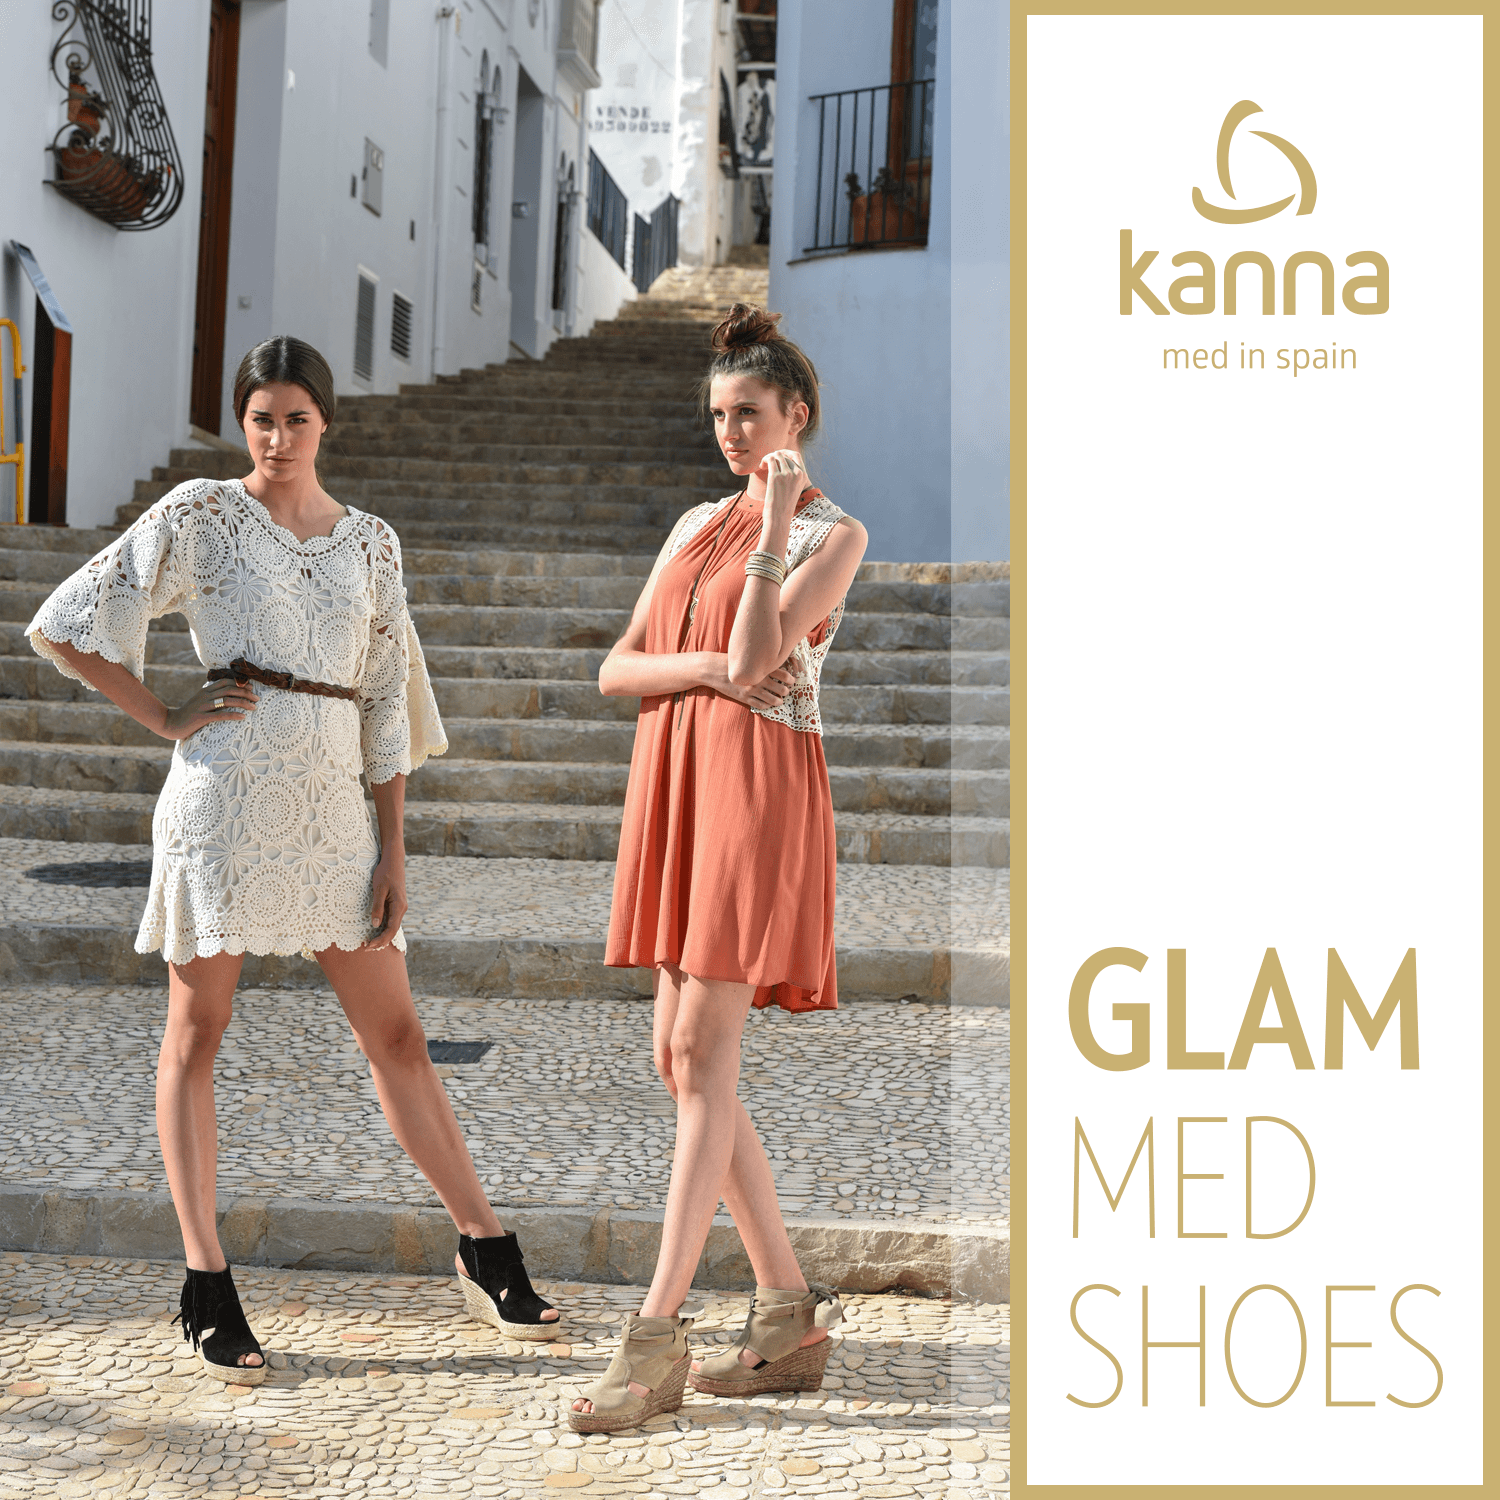 wwwkannashoescom Med in Spain 2016 shoes kannashoes kanna